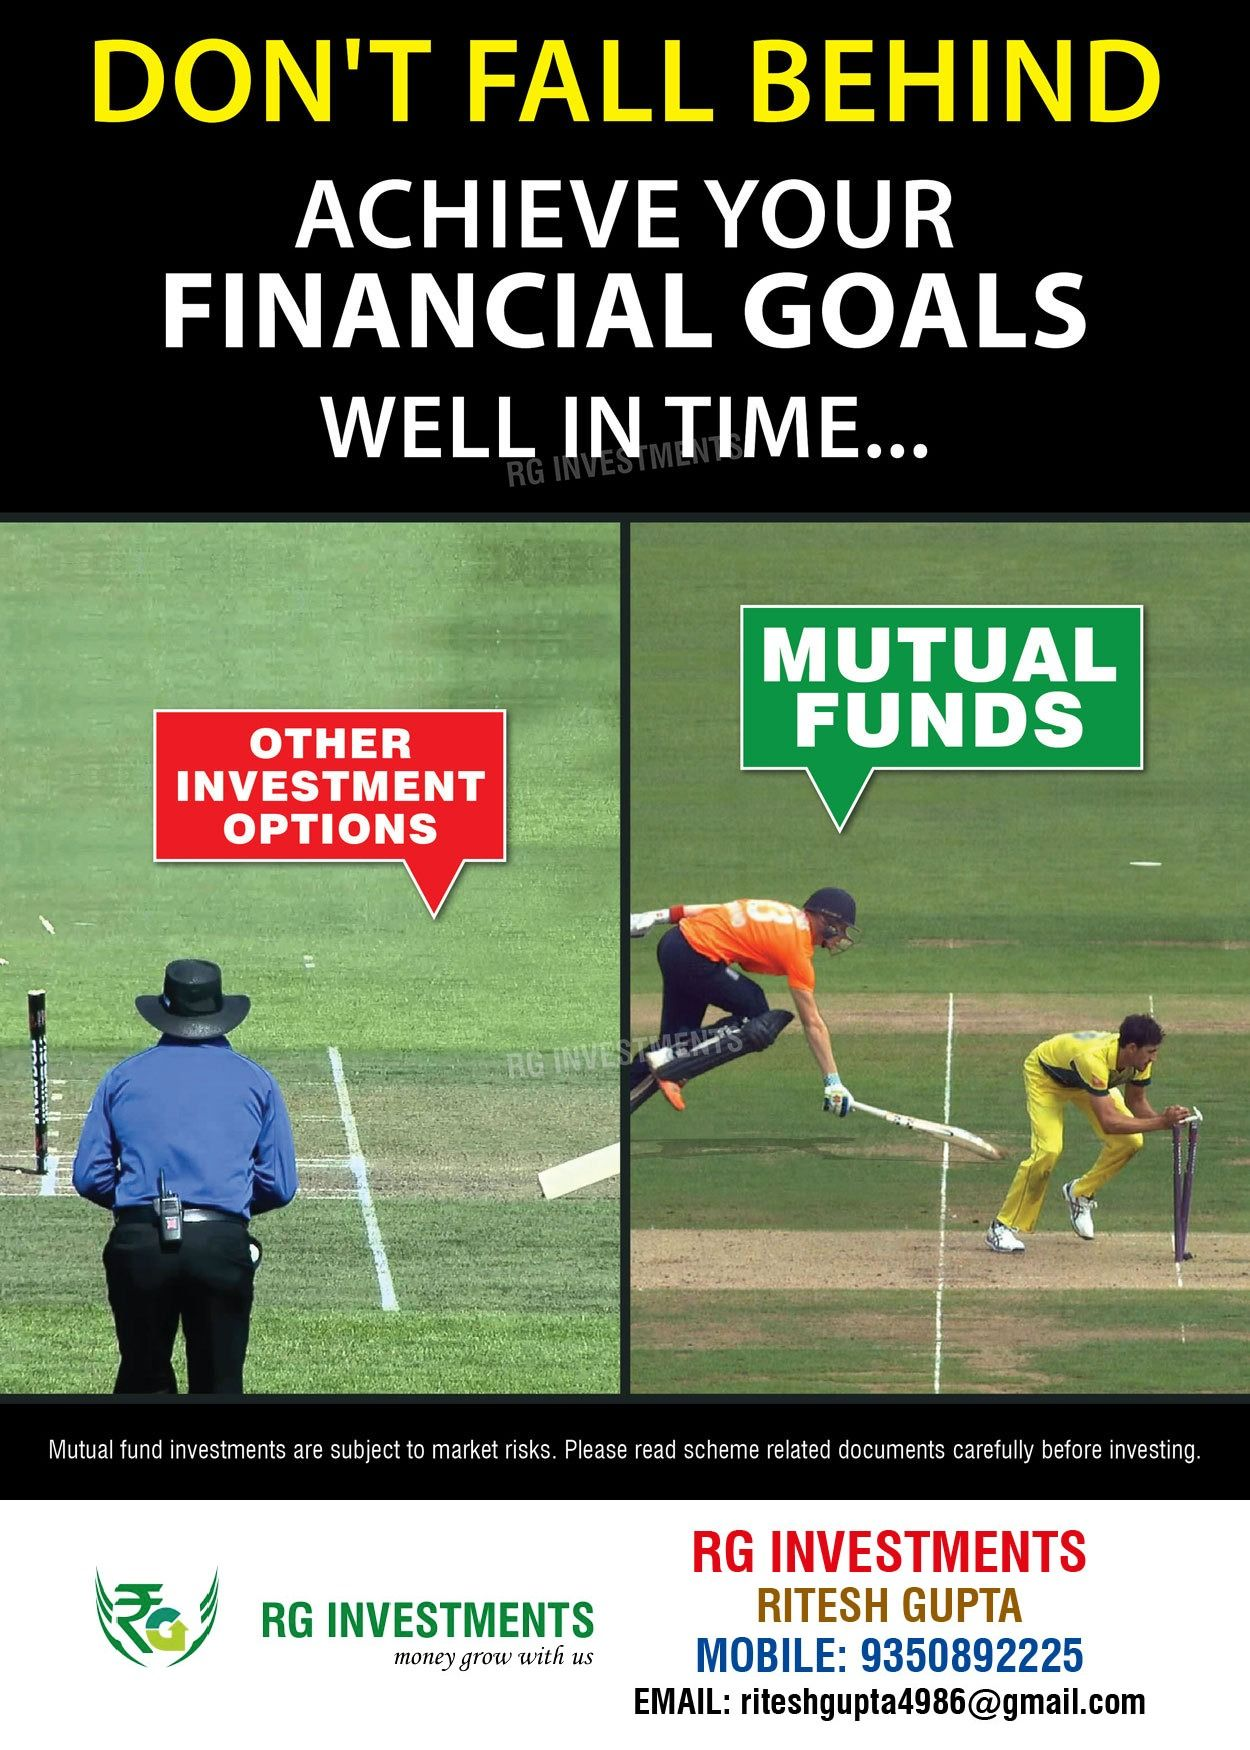 Financial goals image by rg investments on investments